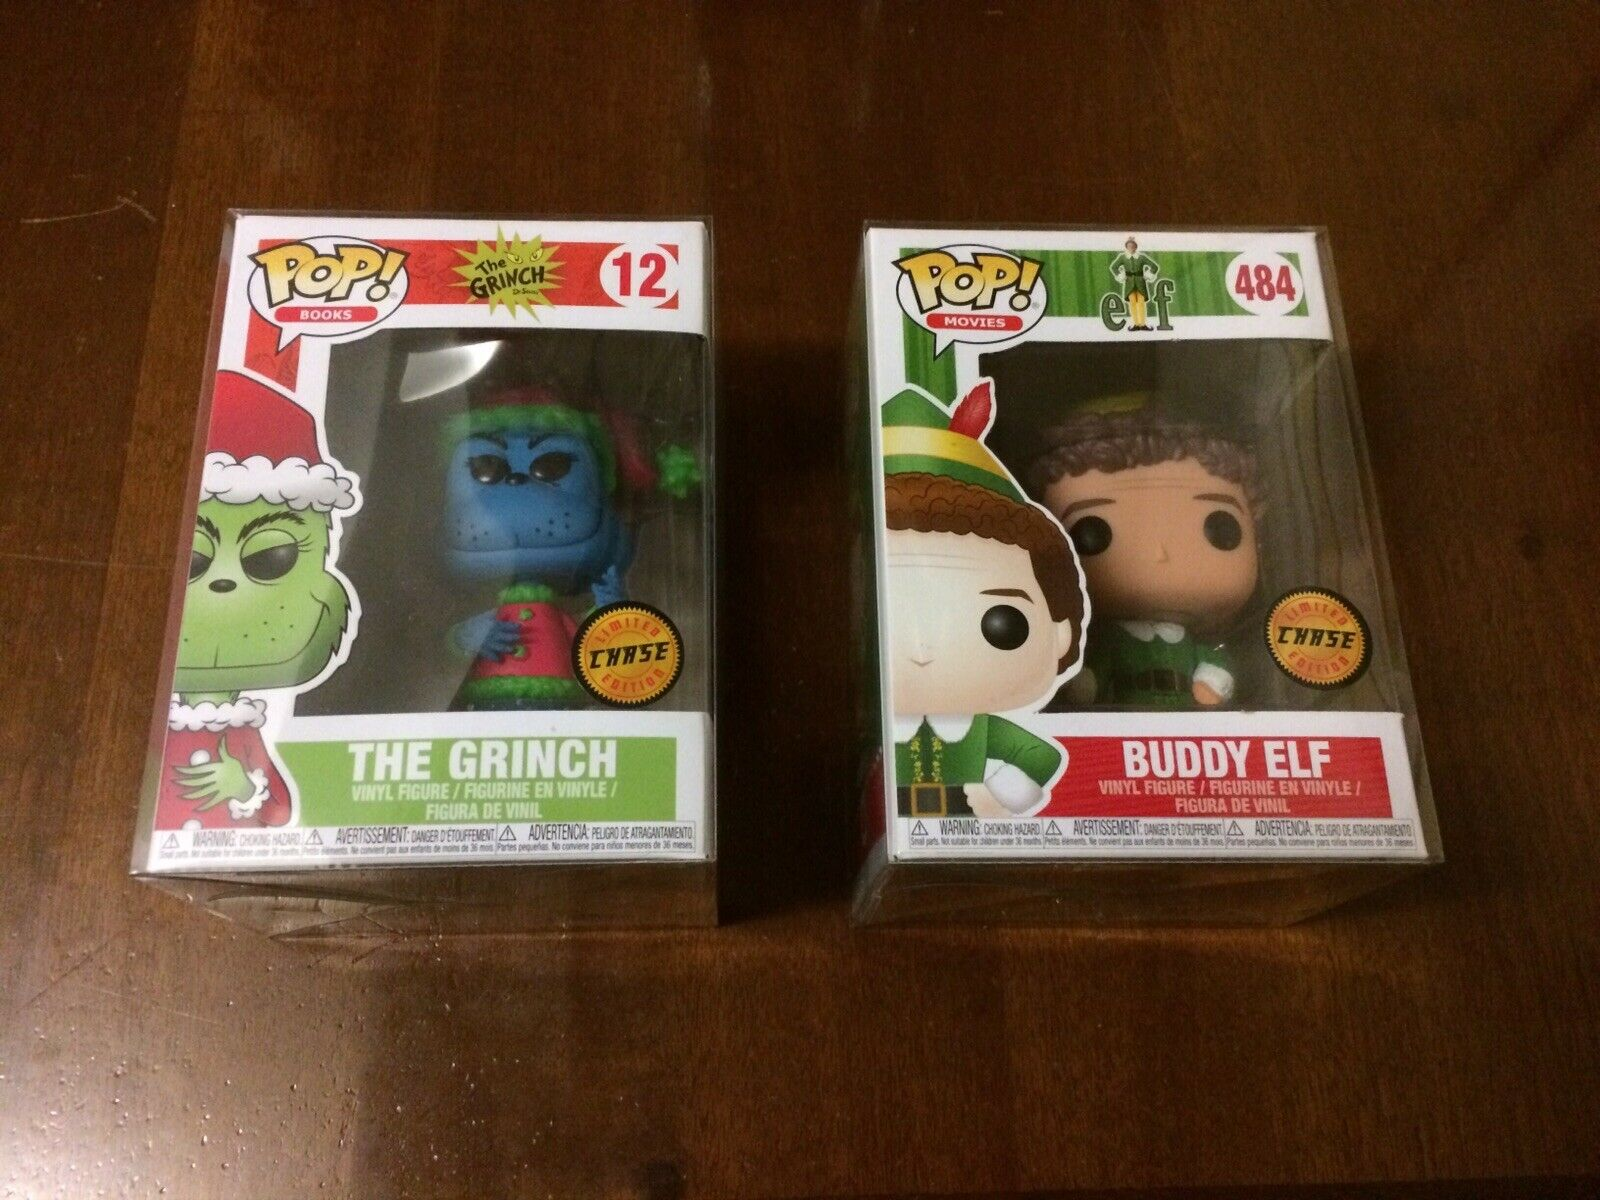 Funko POP CHASE BUDDY ELF + THE GRINCH